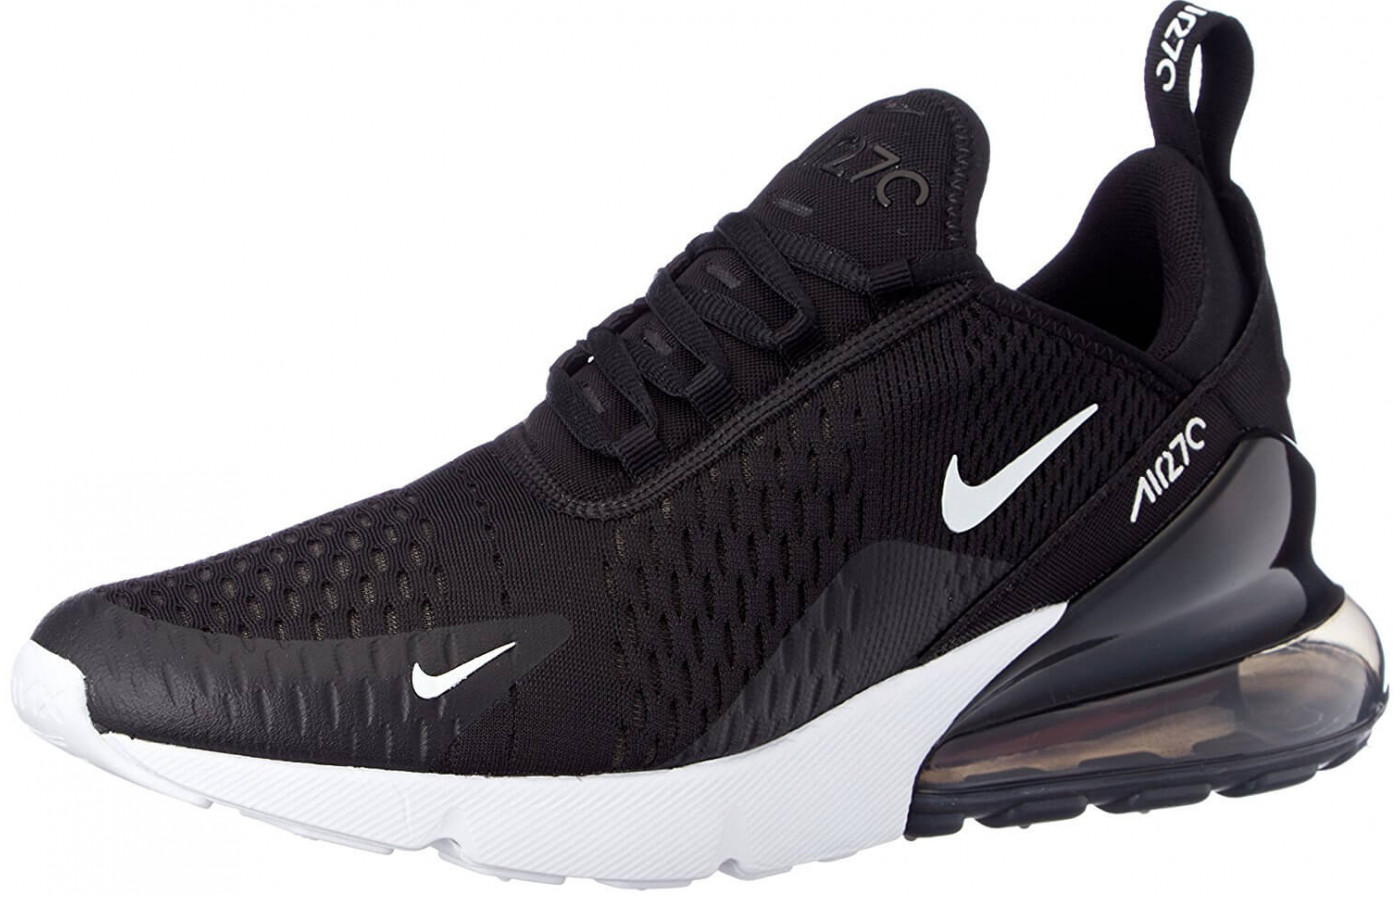 2b8f8131b7 Nike Air Max 270. Mesh upper and 270 degrees of Air ...